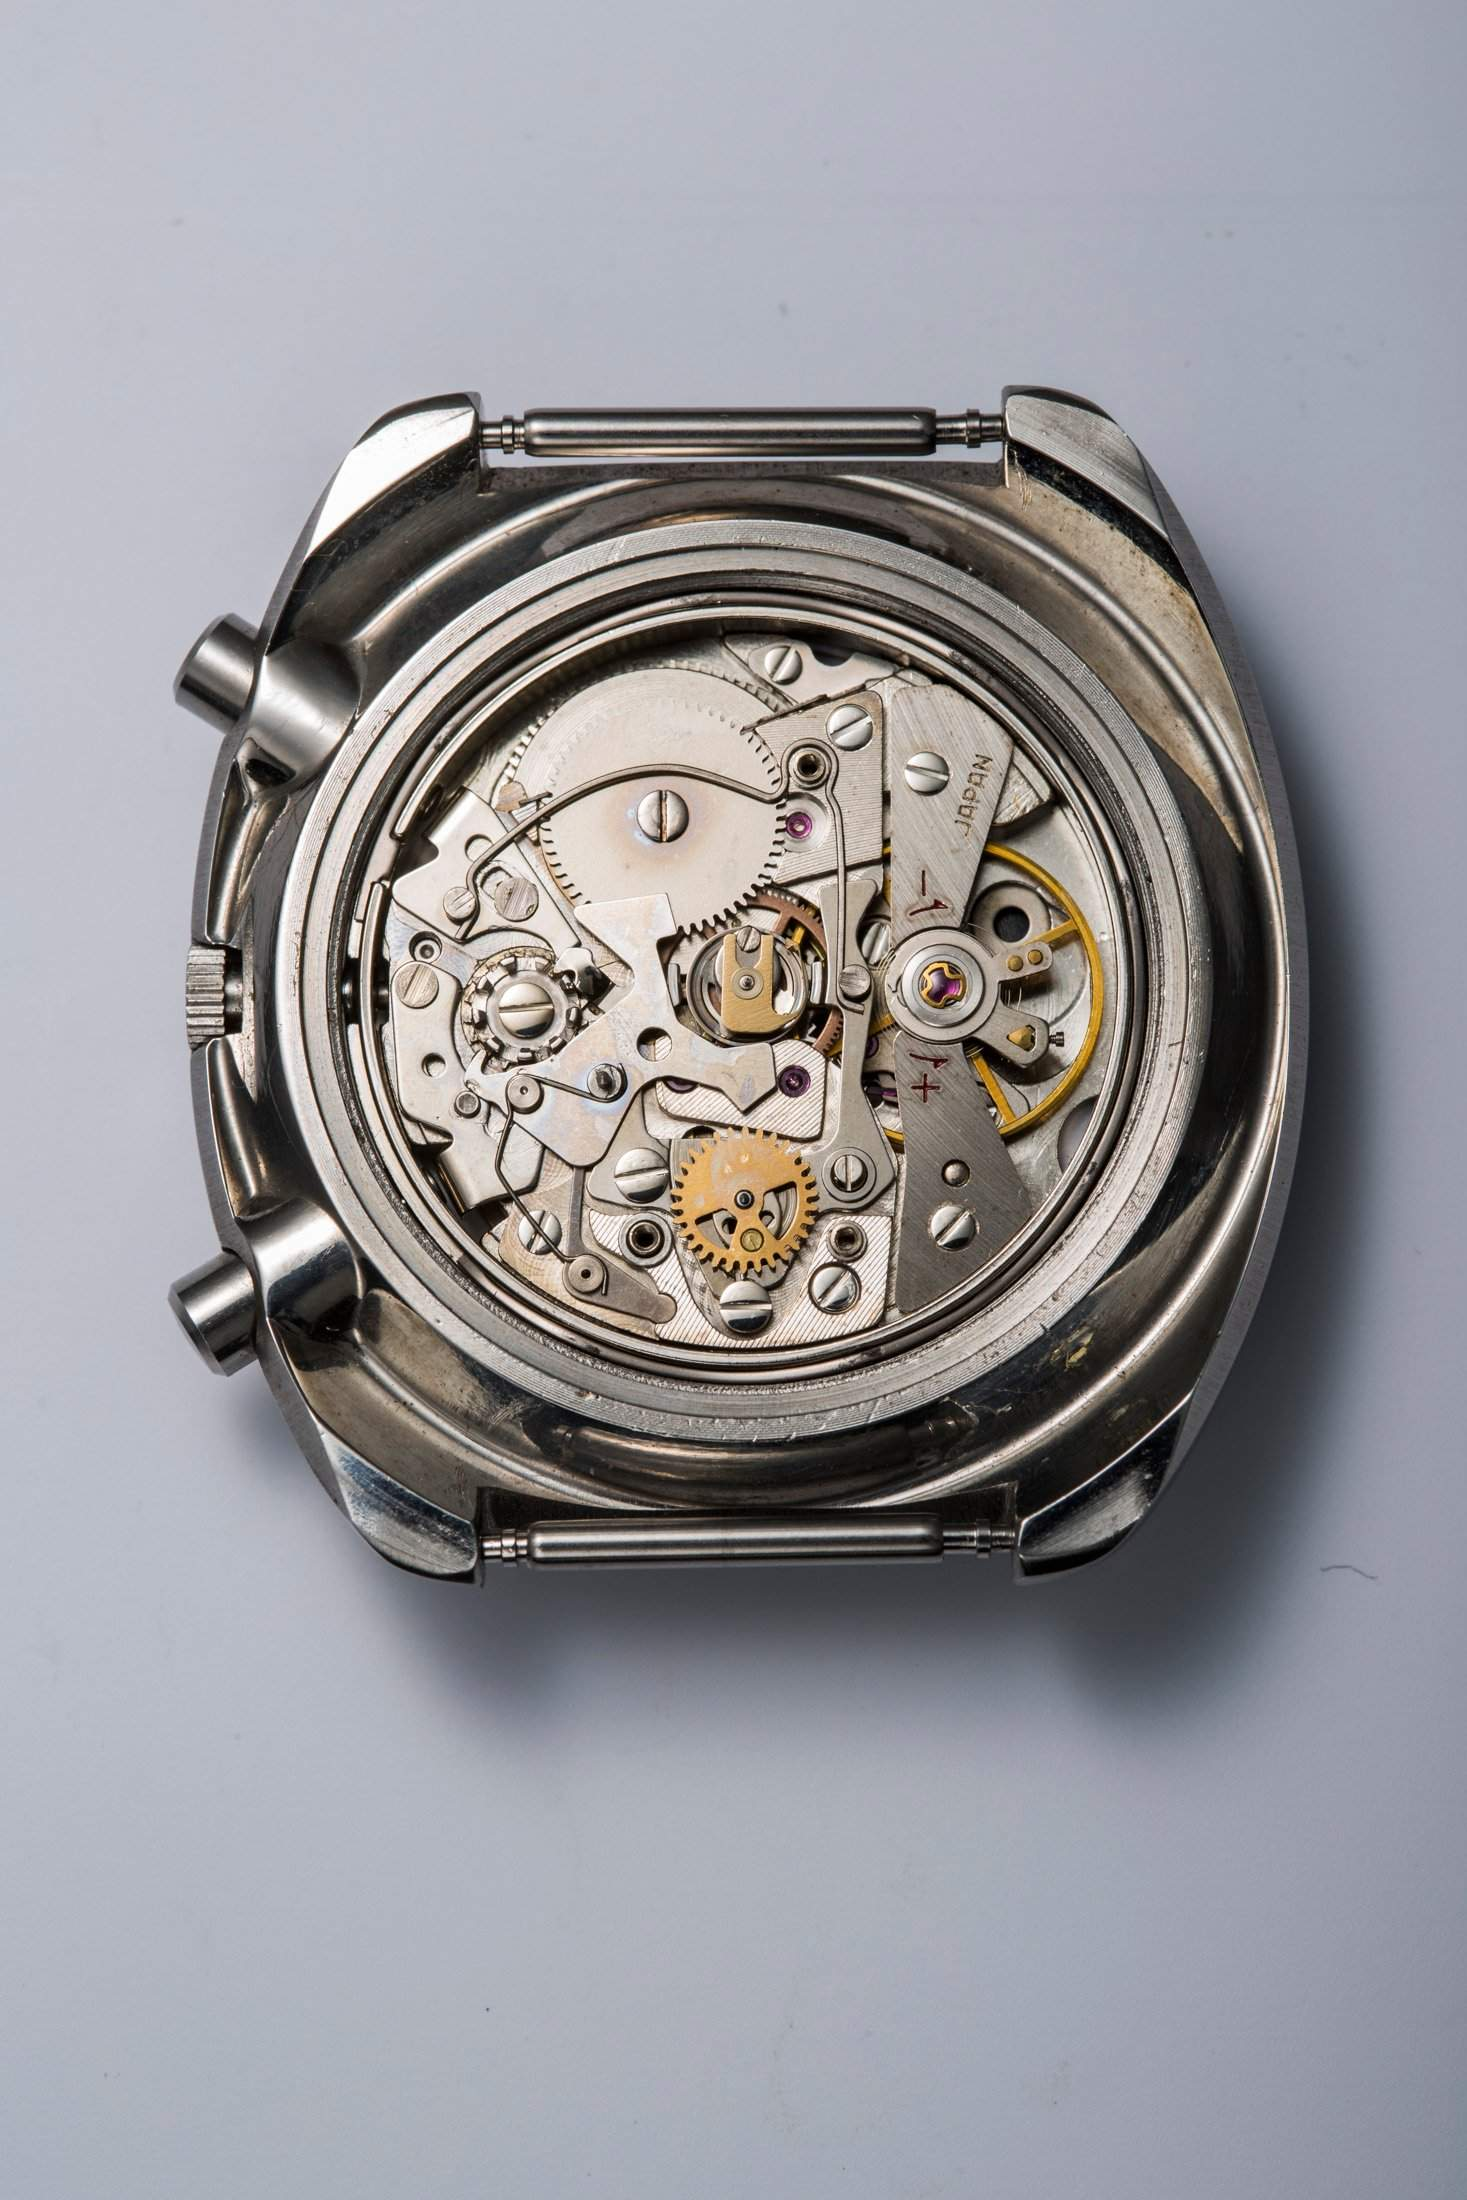 The Seiko caliber 6139 (without a rotor): This movement was developed using a base caliber from the 61 series.